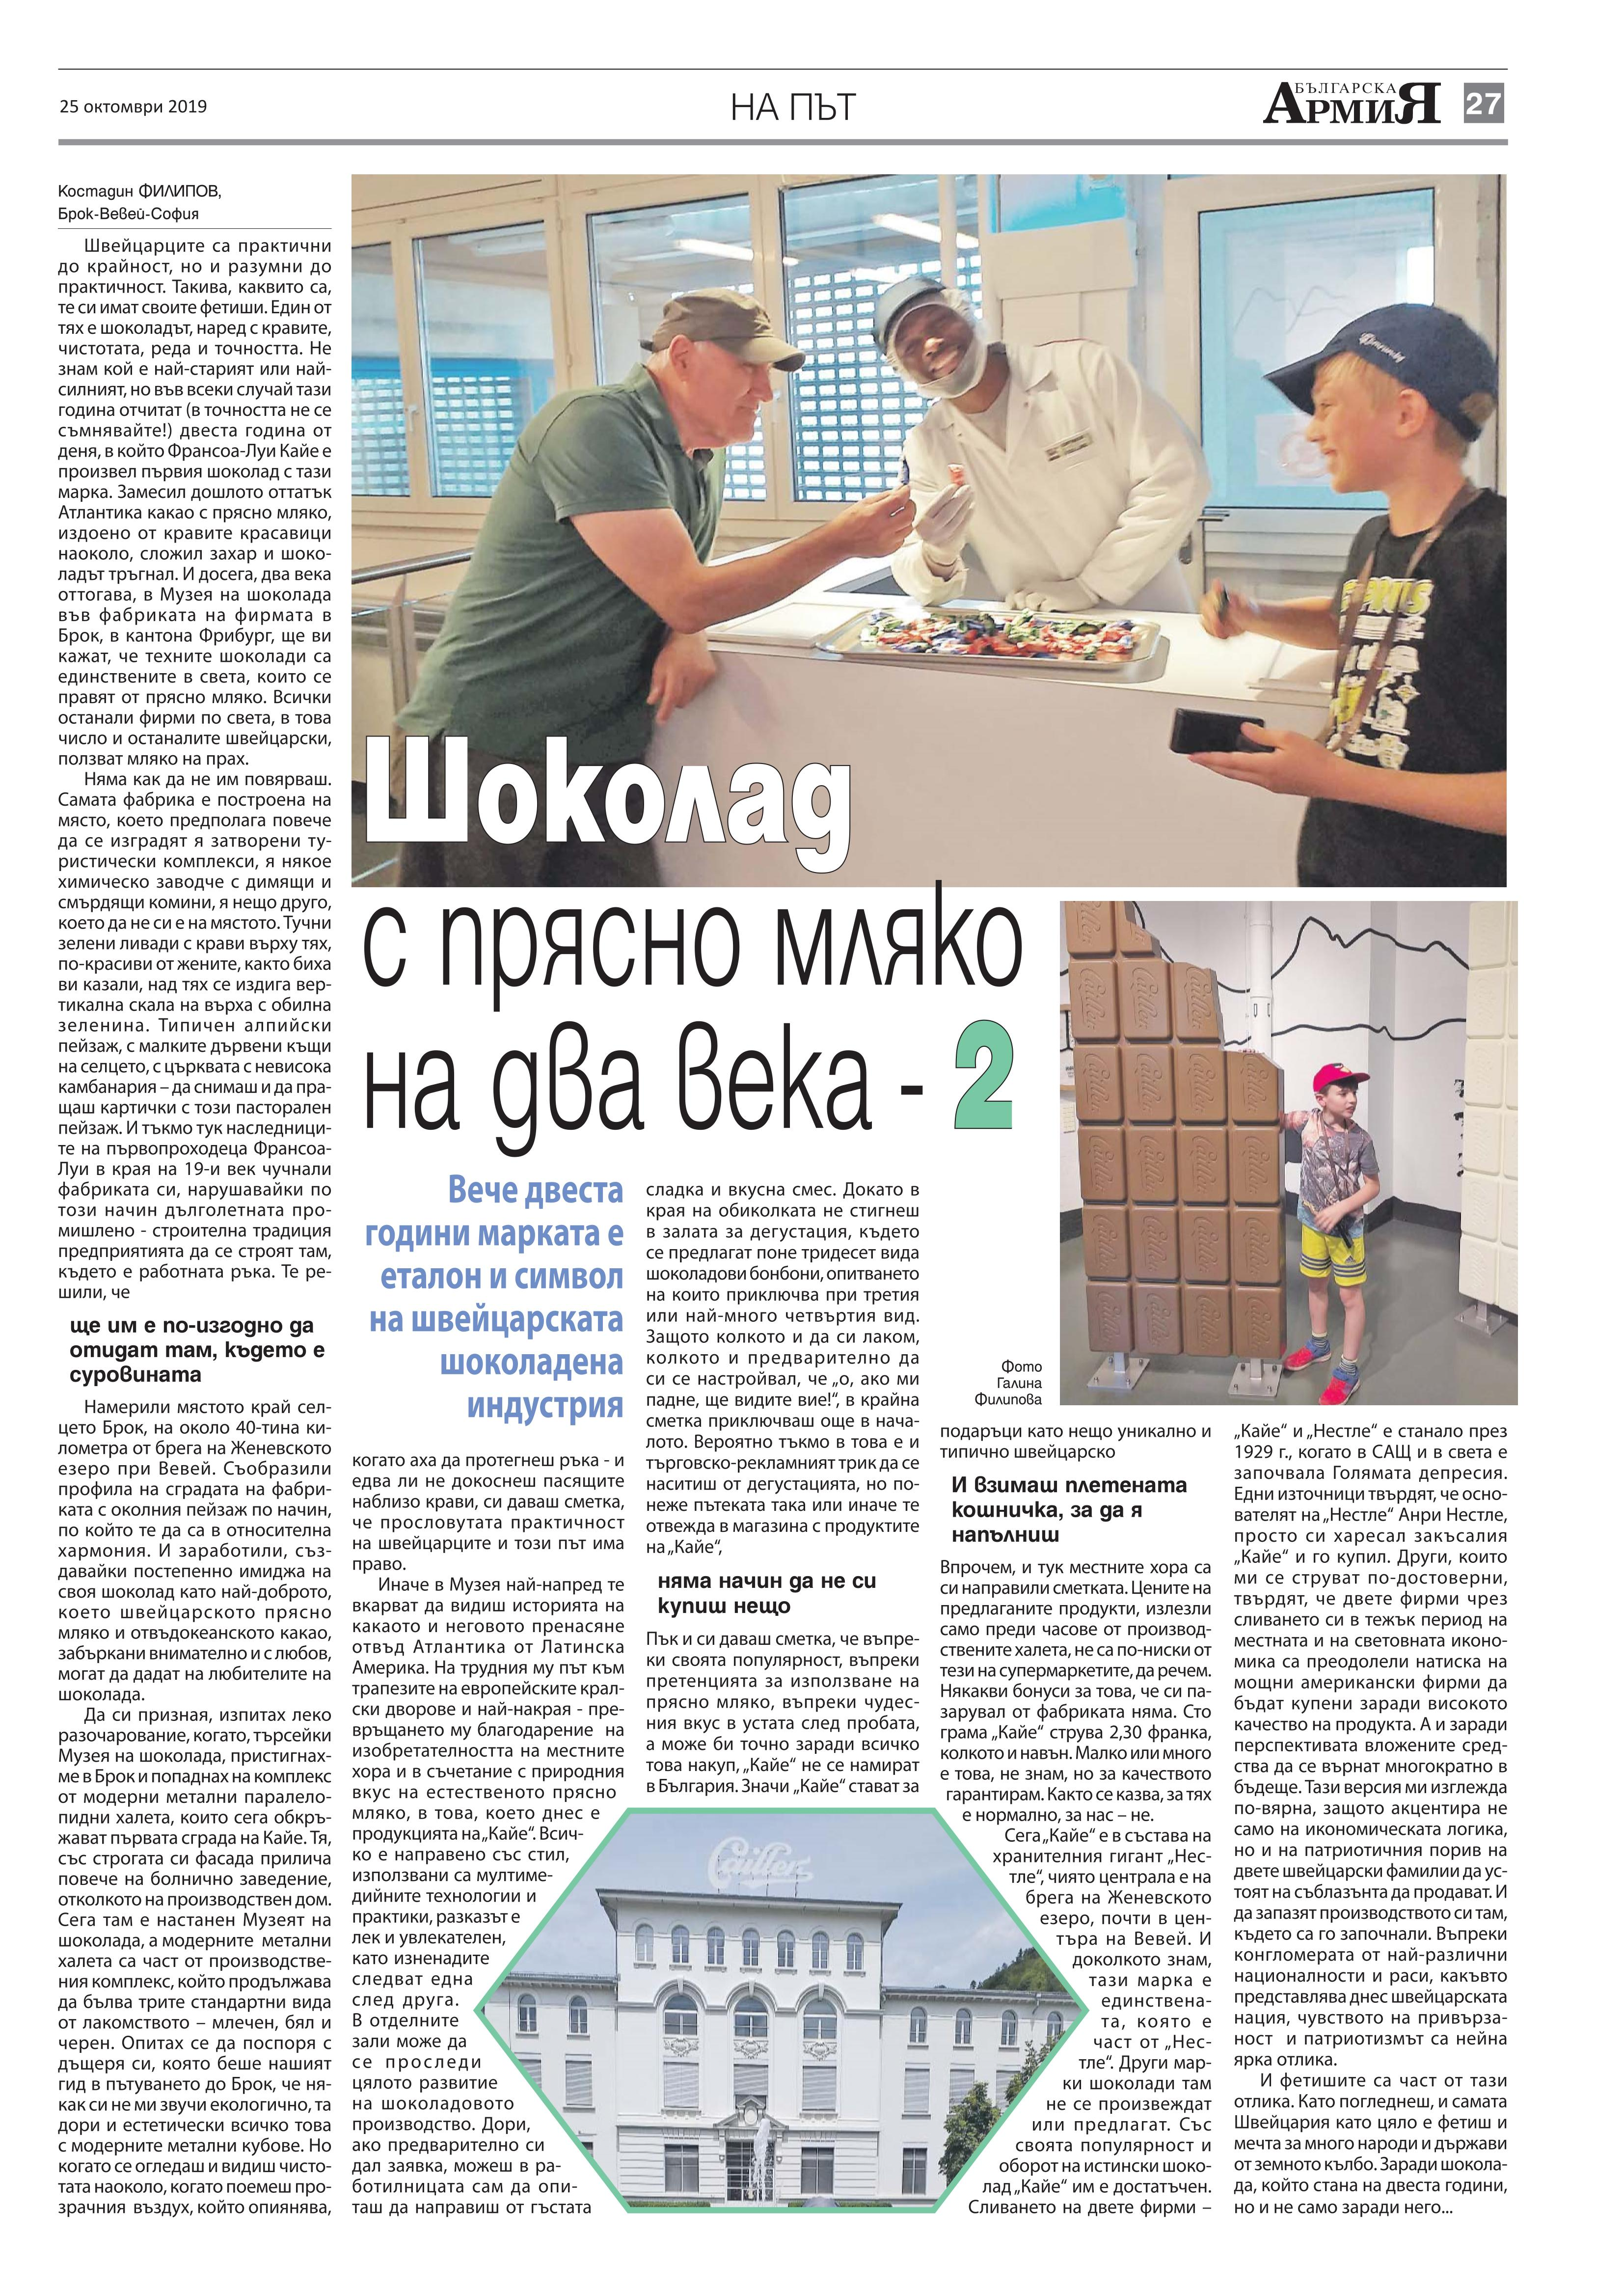 https://www.armymedia.bg/wp-content/uploads/2015/06/27.page1_-94.jpg